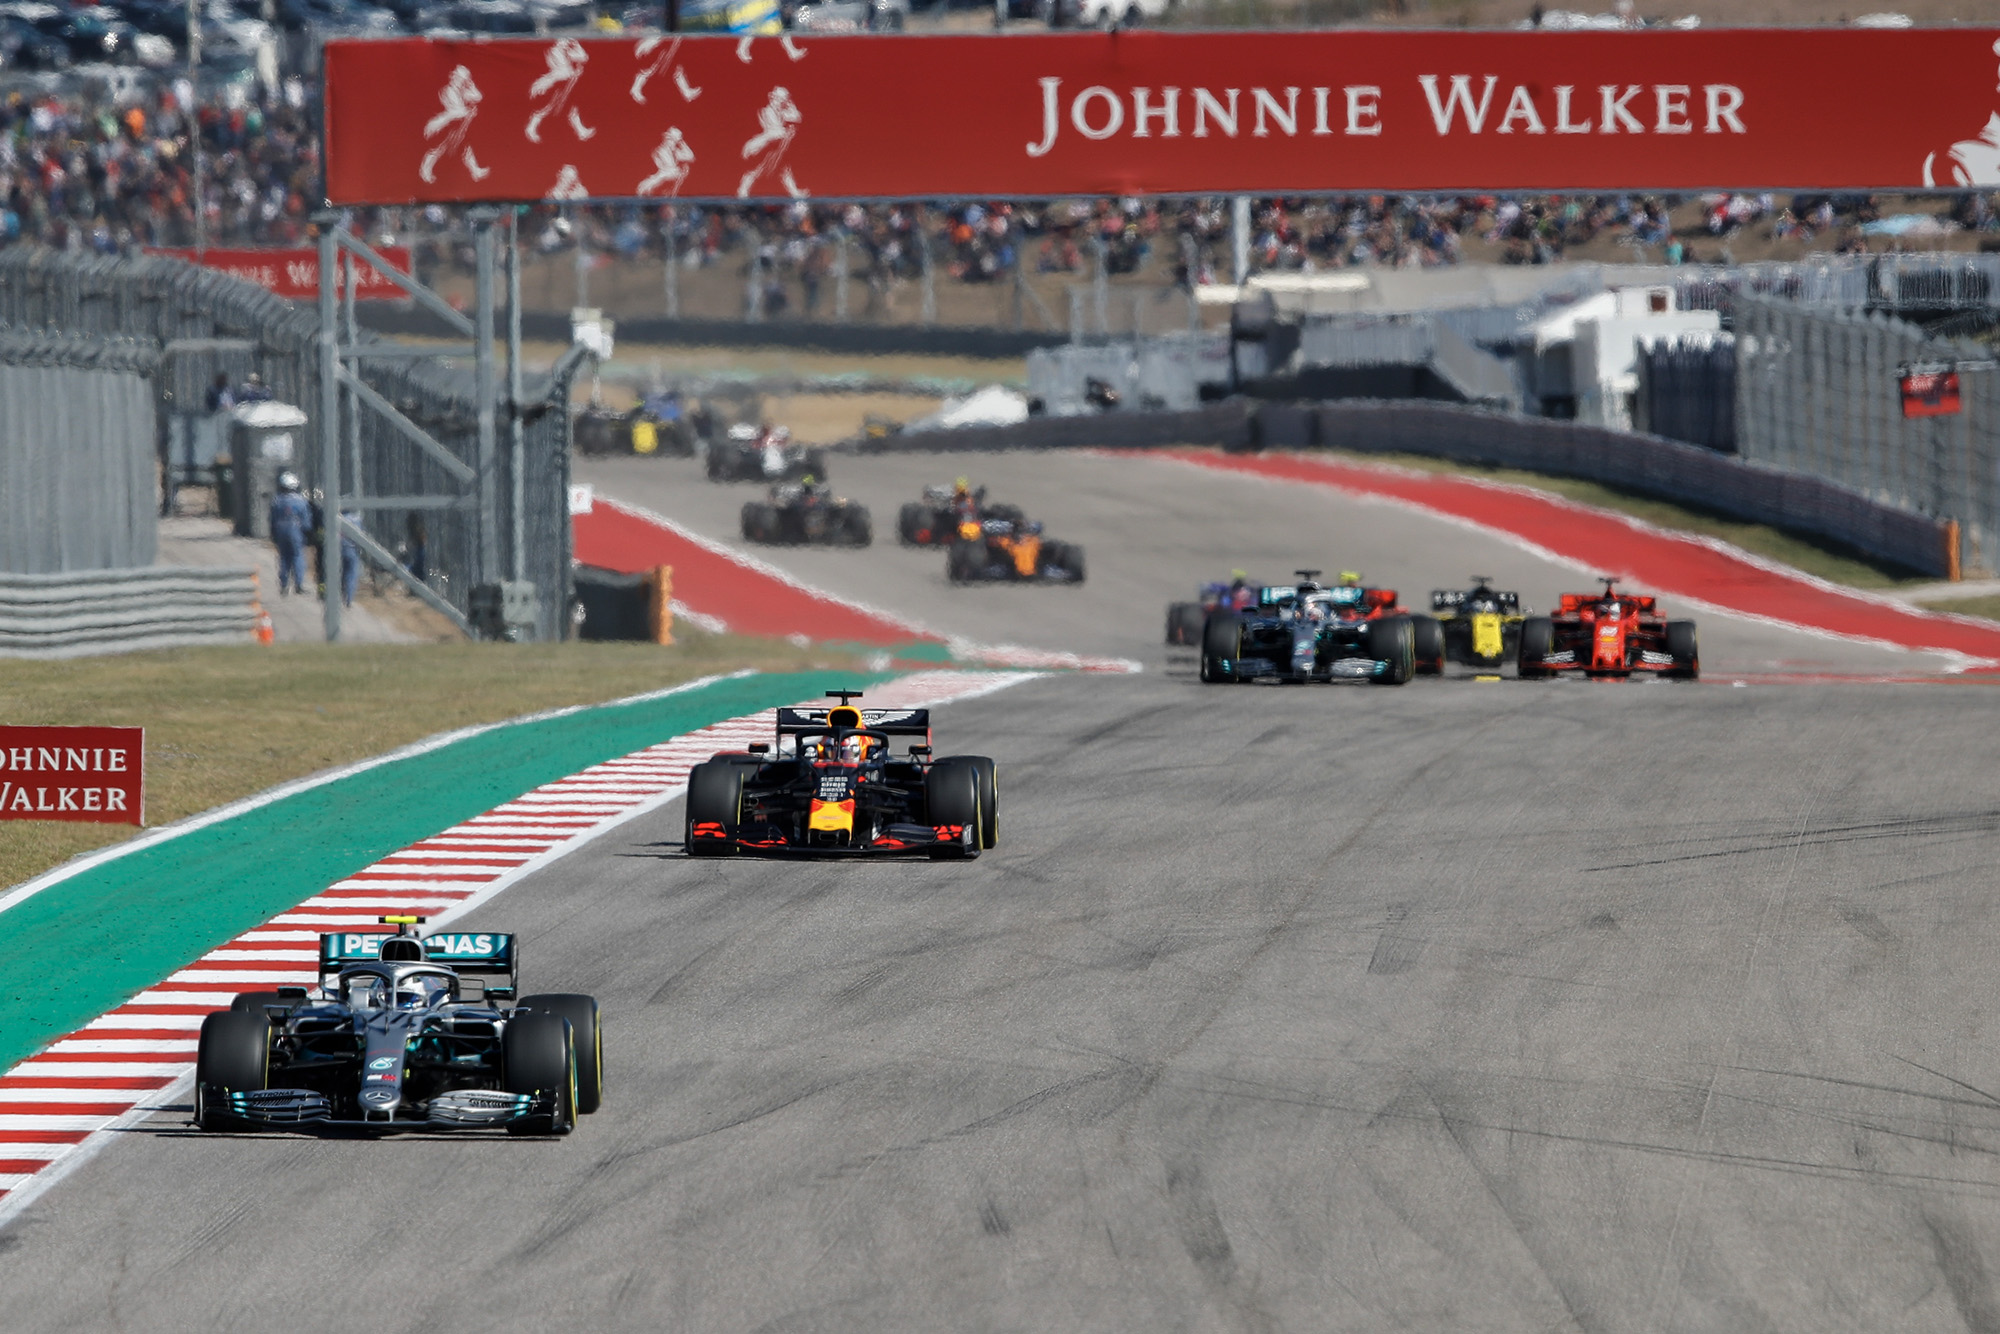 Valtteri Bottas leads from Max Verstappen and Lewis Hamilton early in the 2019 United States Grand Prix